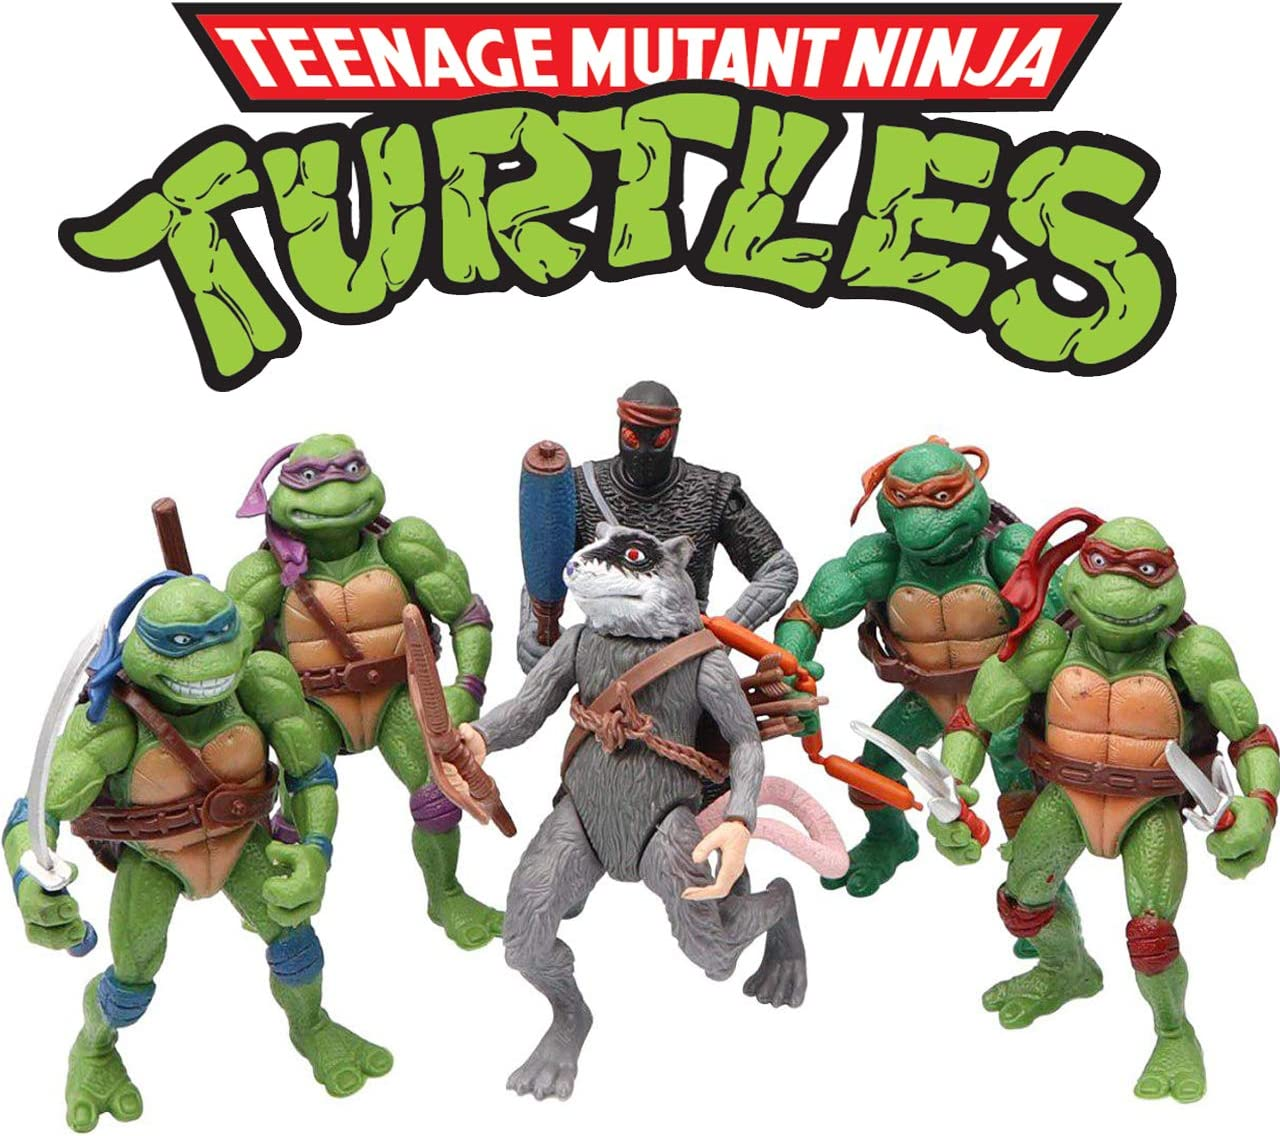 VITADAN Ninja Turtles 6 PCS Set - Teenage Mutant Ninja Turtles Action Figure - TMNT Action Figures - Ninja Turtles Toy Set - Ninja Turtles Action Figures Mutant Teenage Set